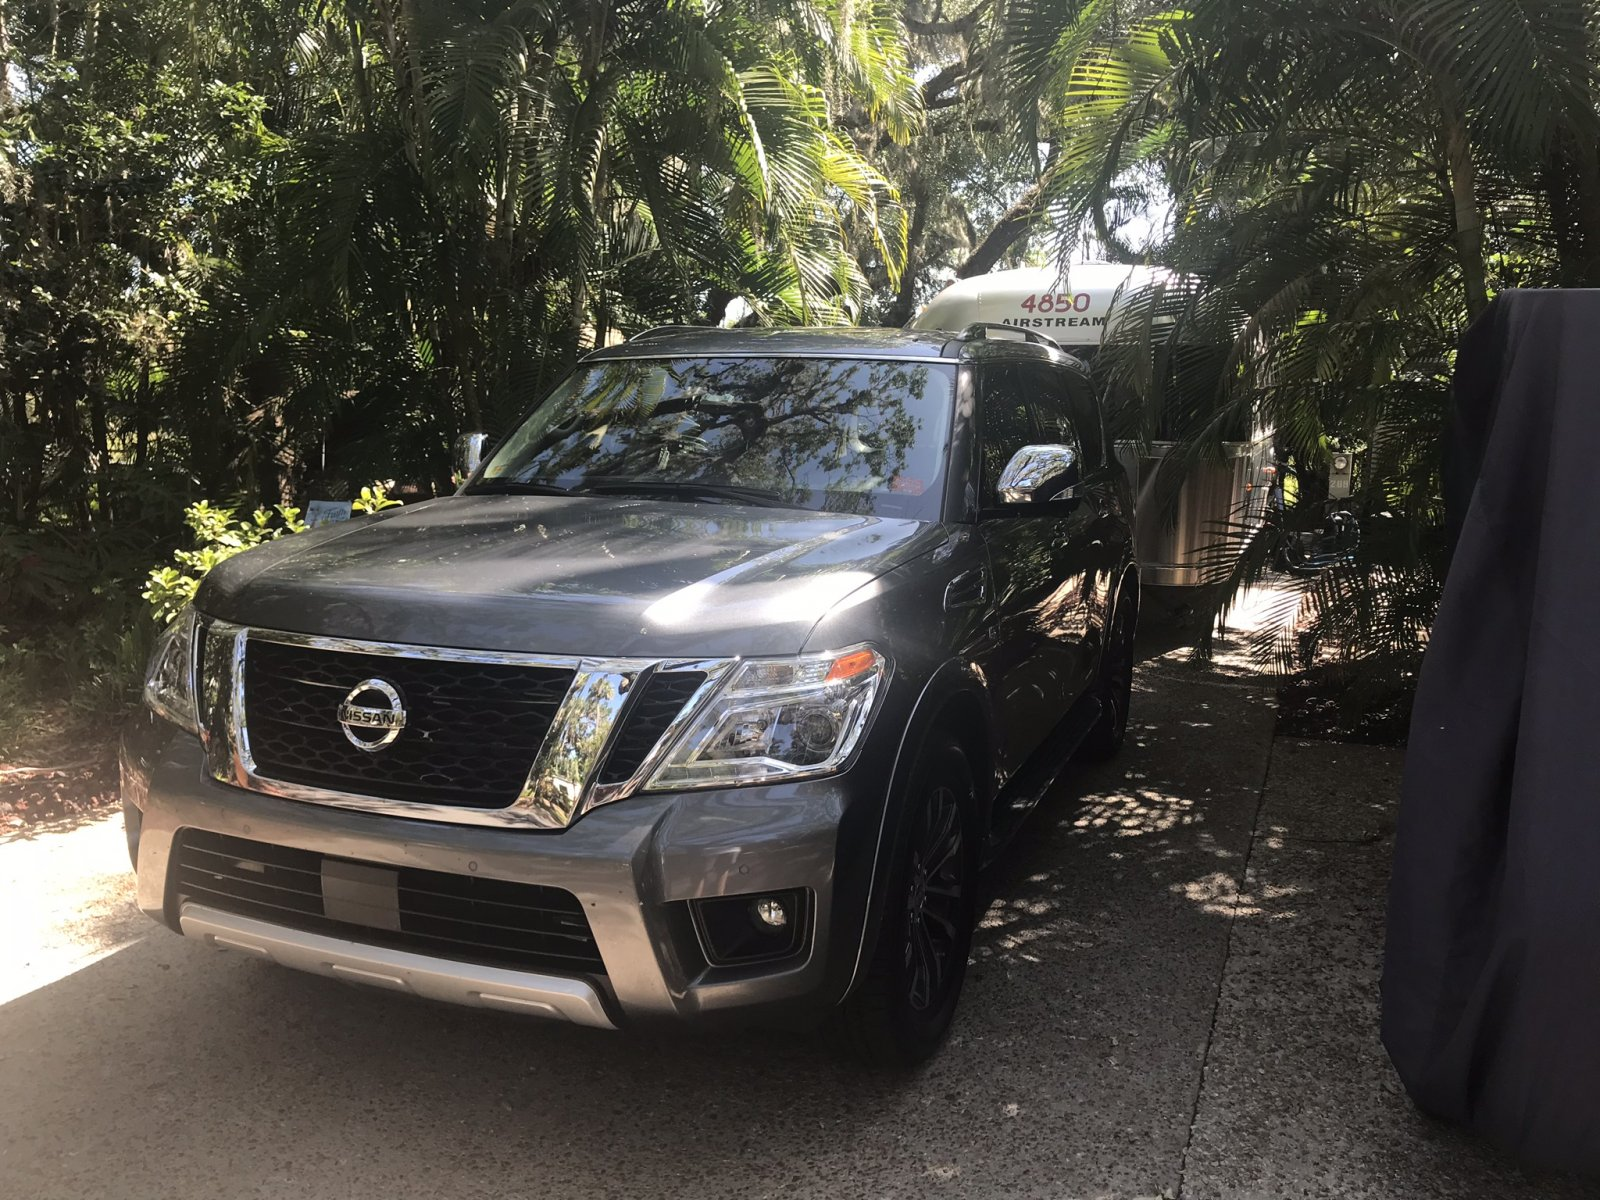 New 2018 Nissan Armada tow vehicle - Airstream Forums